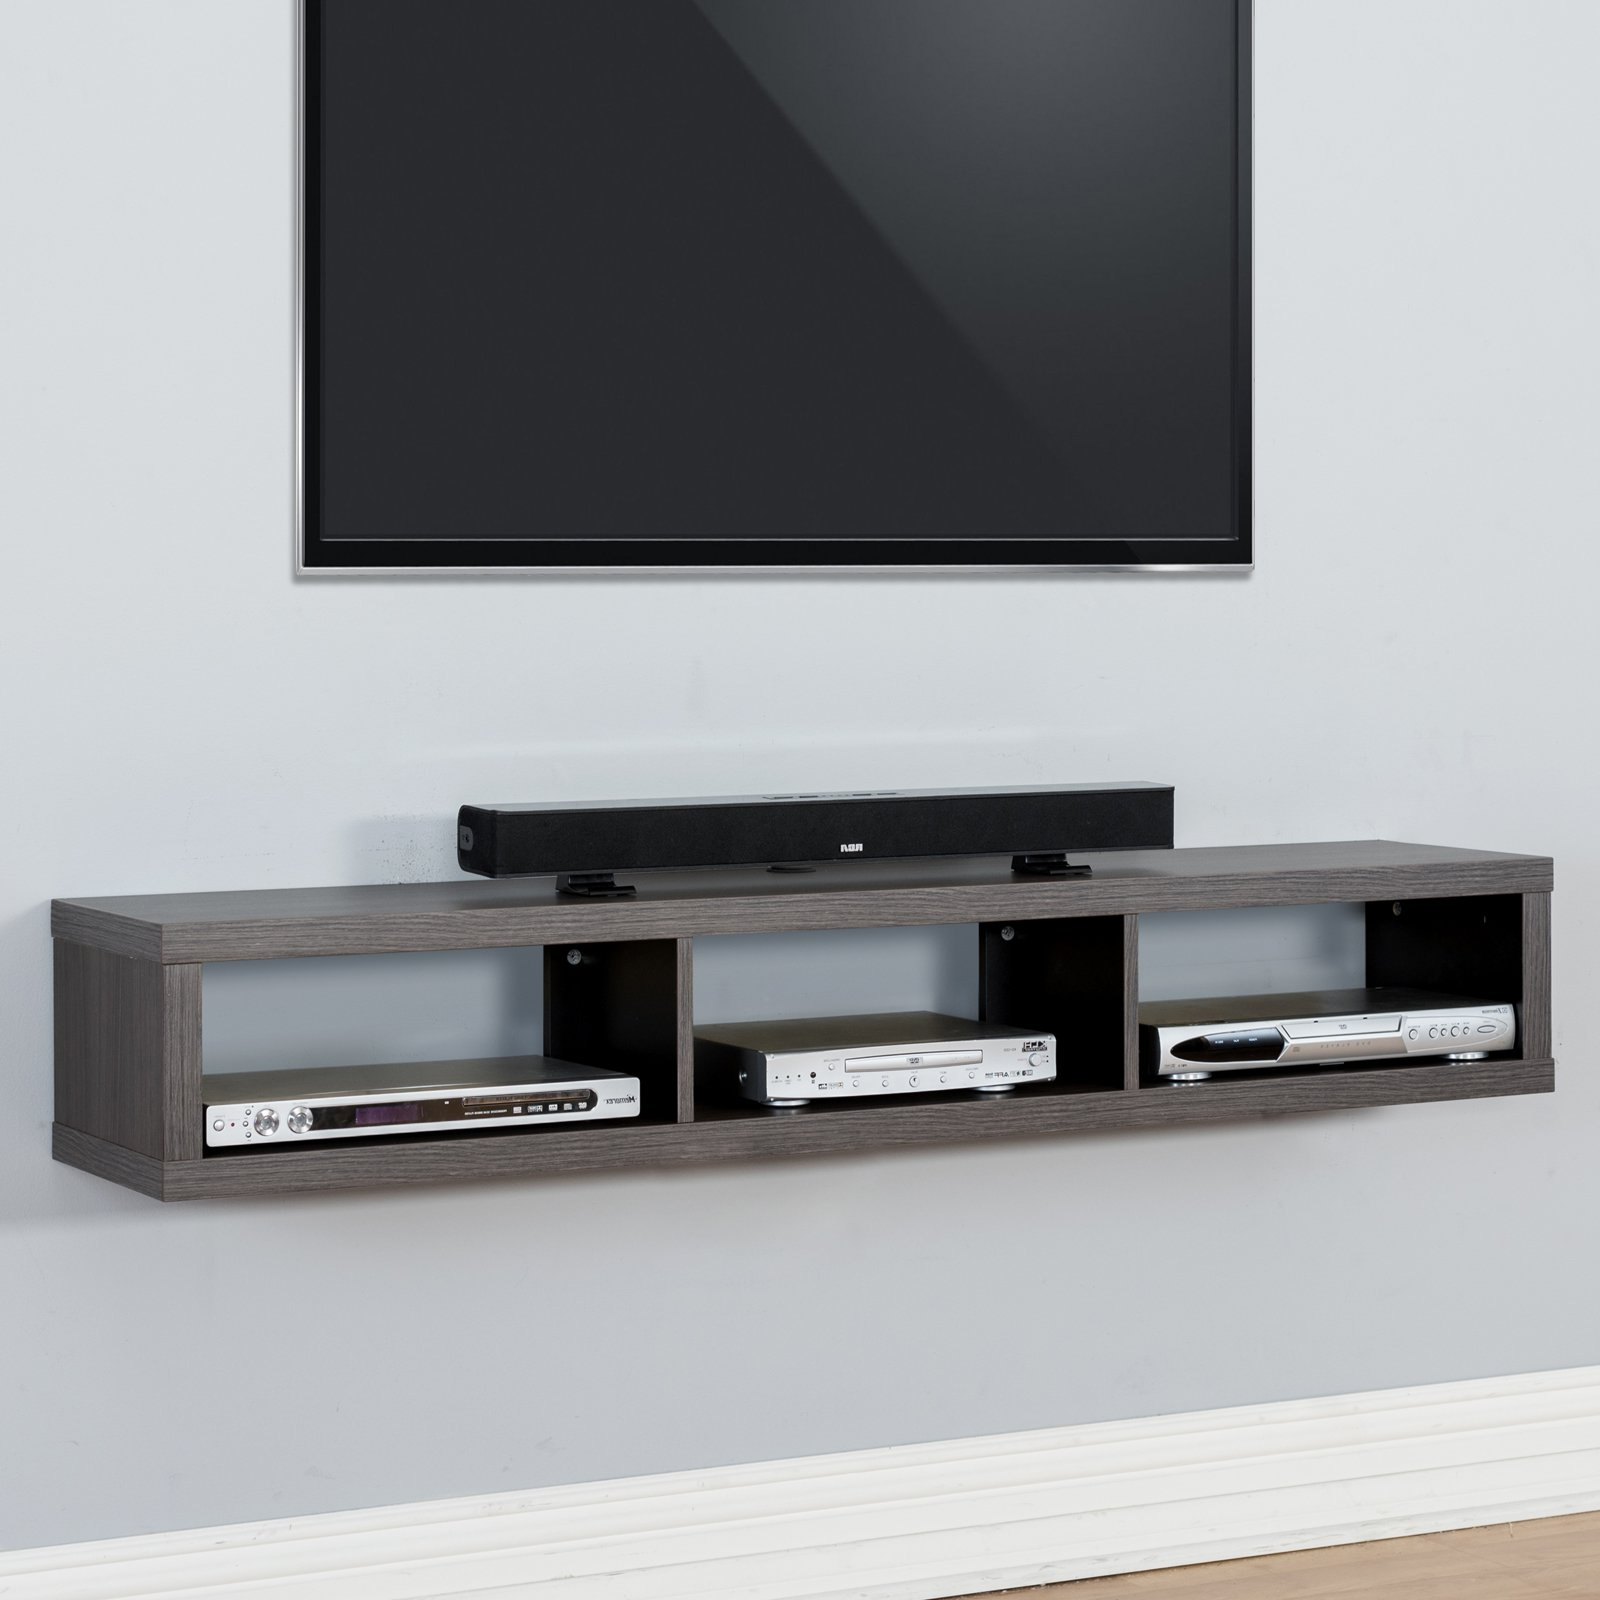 Preferred Martin Furniture Shallow Wall Mounted Tv Shelf – Walmart For Wall Mounted Tv Stands With Shelves (View 16 of 20)